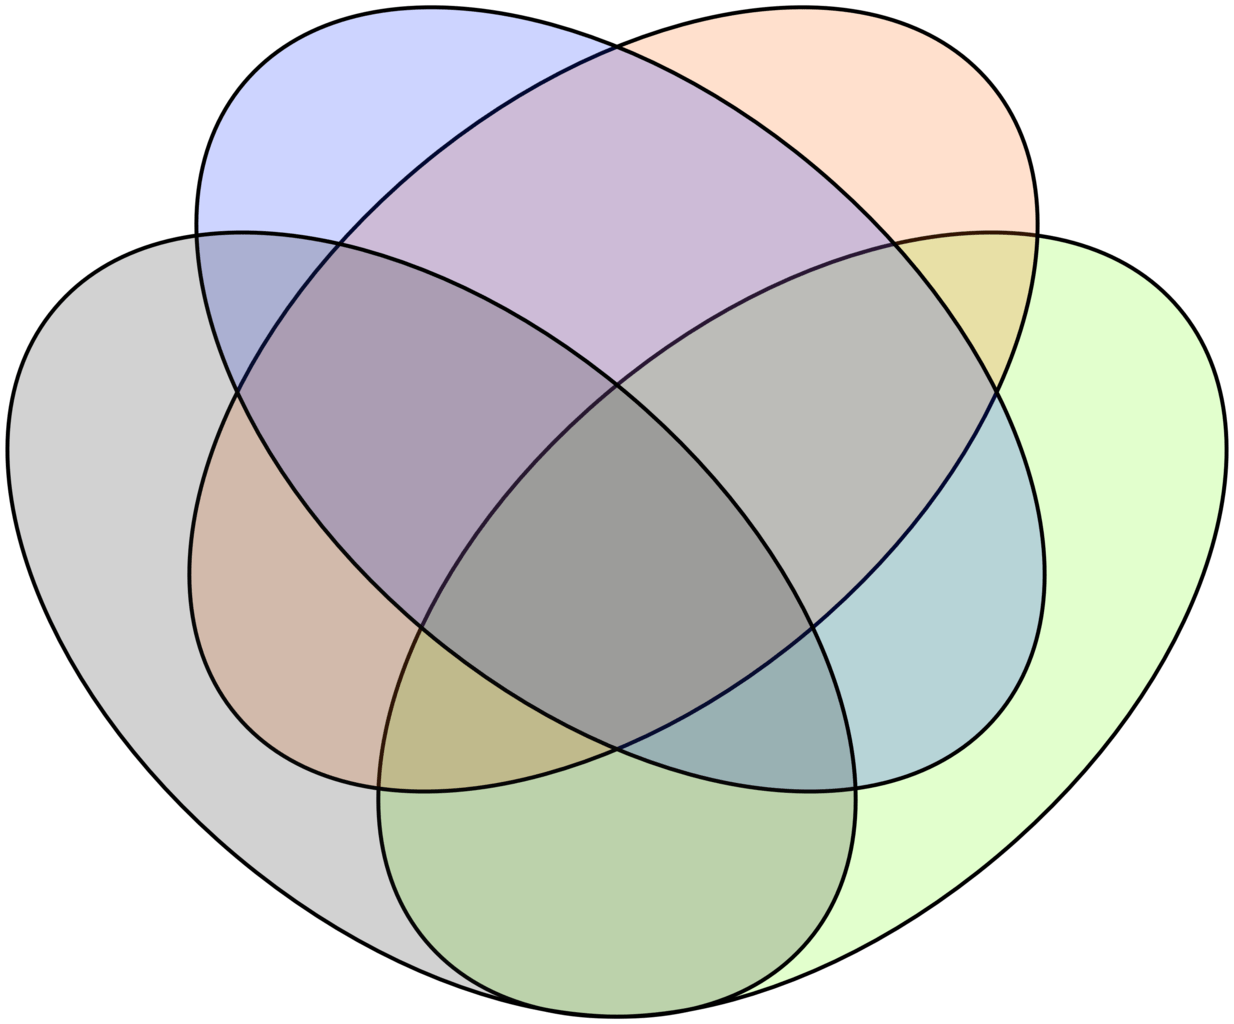 venn euler diagram in math xs650 wiring pamco ignition file 39s four ellipse construction png wikimedia commons